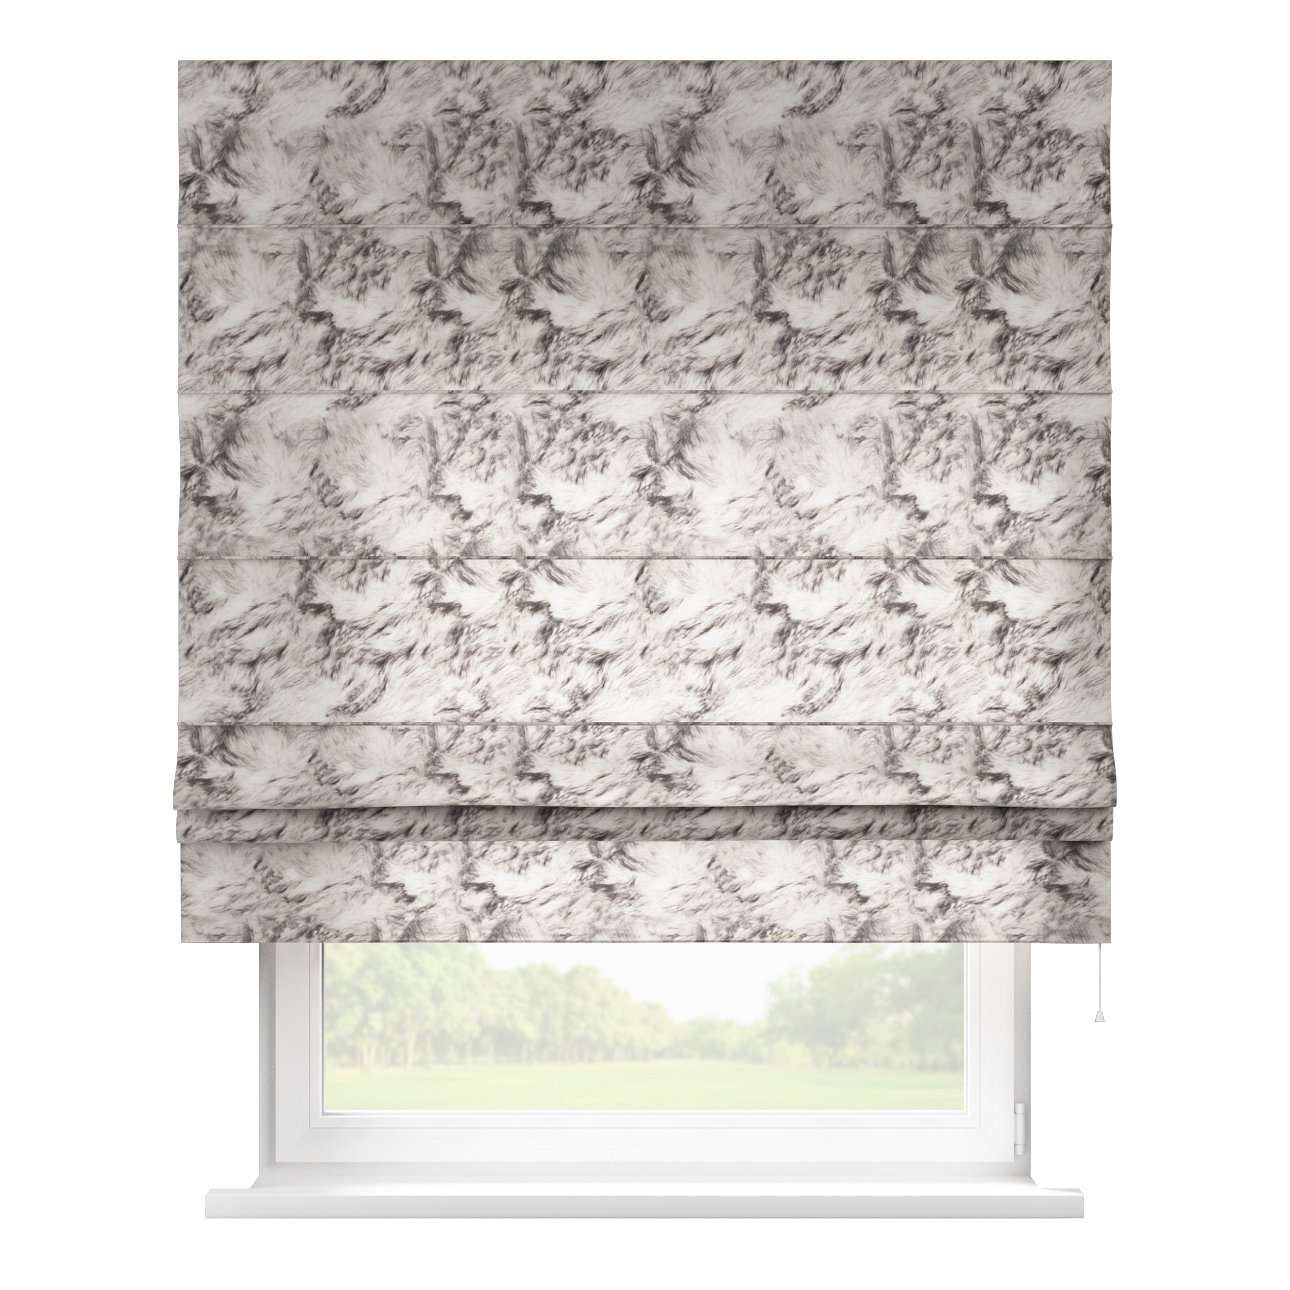 Padva roman blind  80 x 170 cm (31.5 x 67 inch) in collection Norge, fabric: 140-82